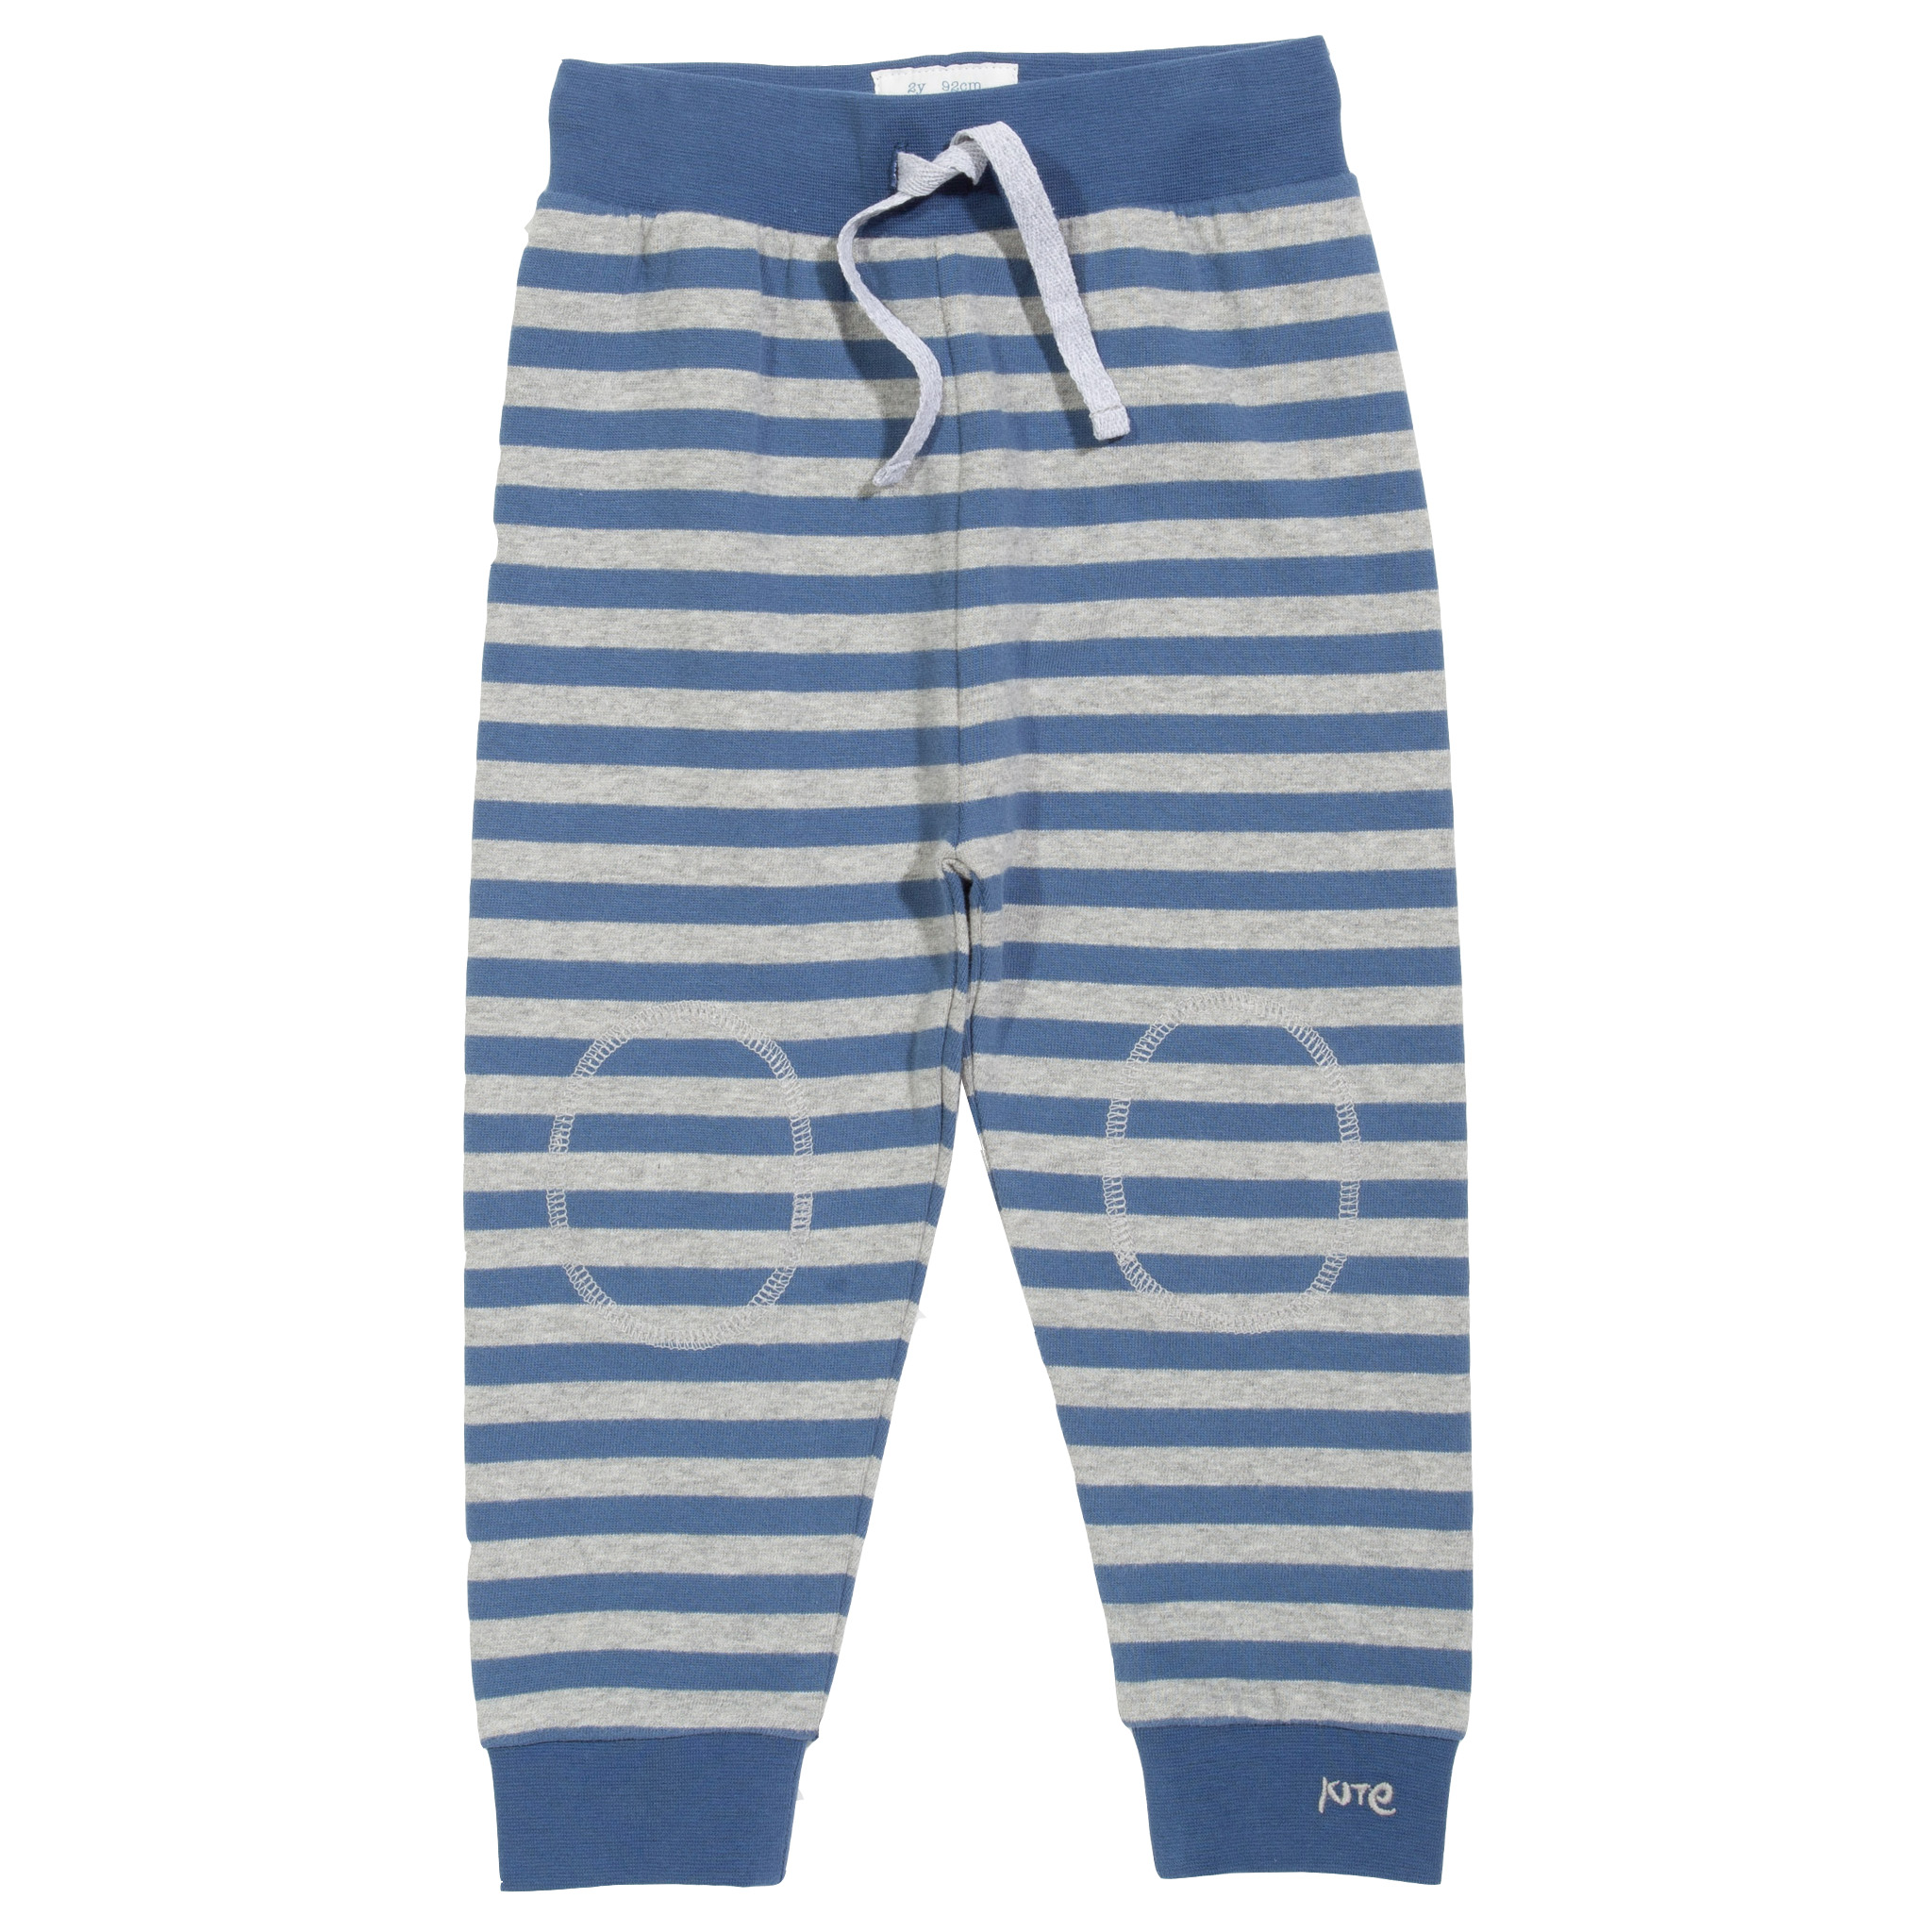 Kite Stripy Joggers-Navy (was £26.00)